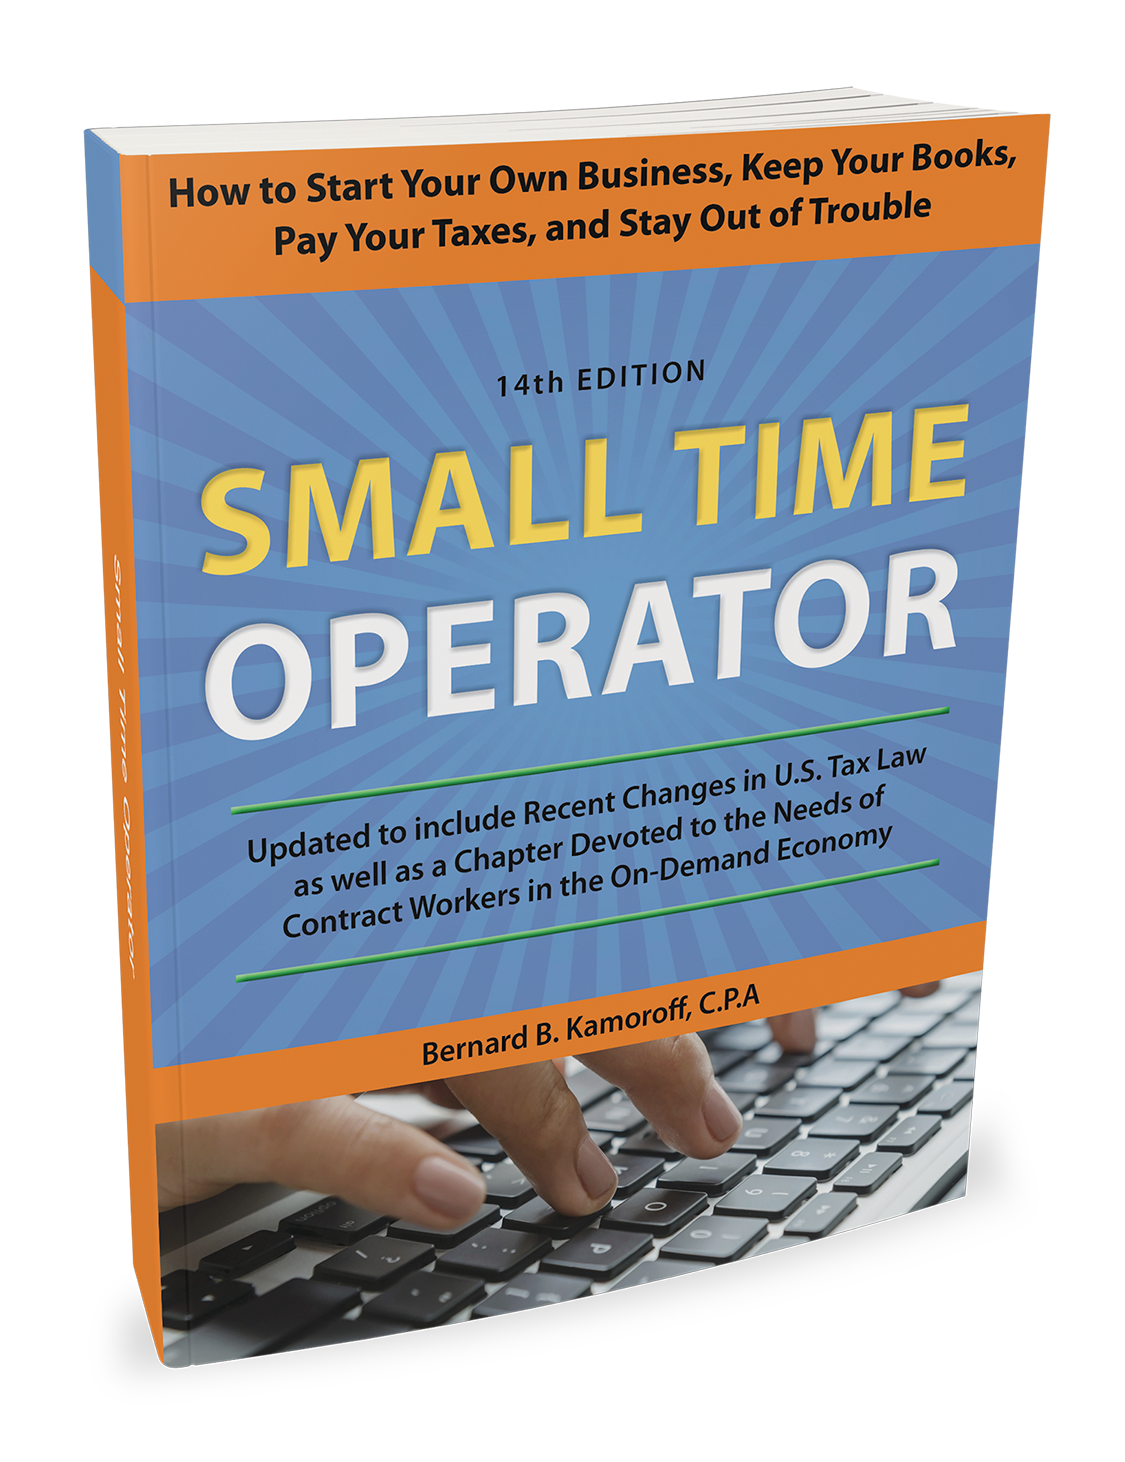 Small Time Operator (14th edition) - #4758